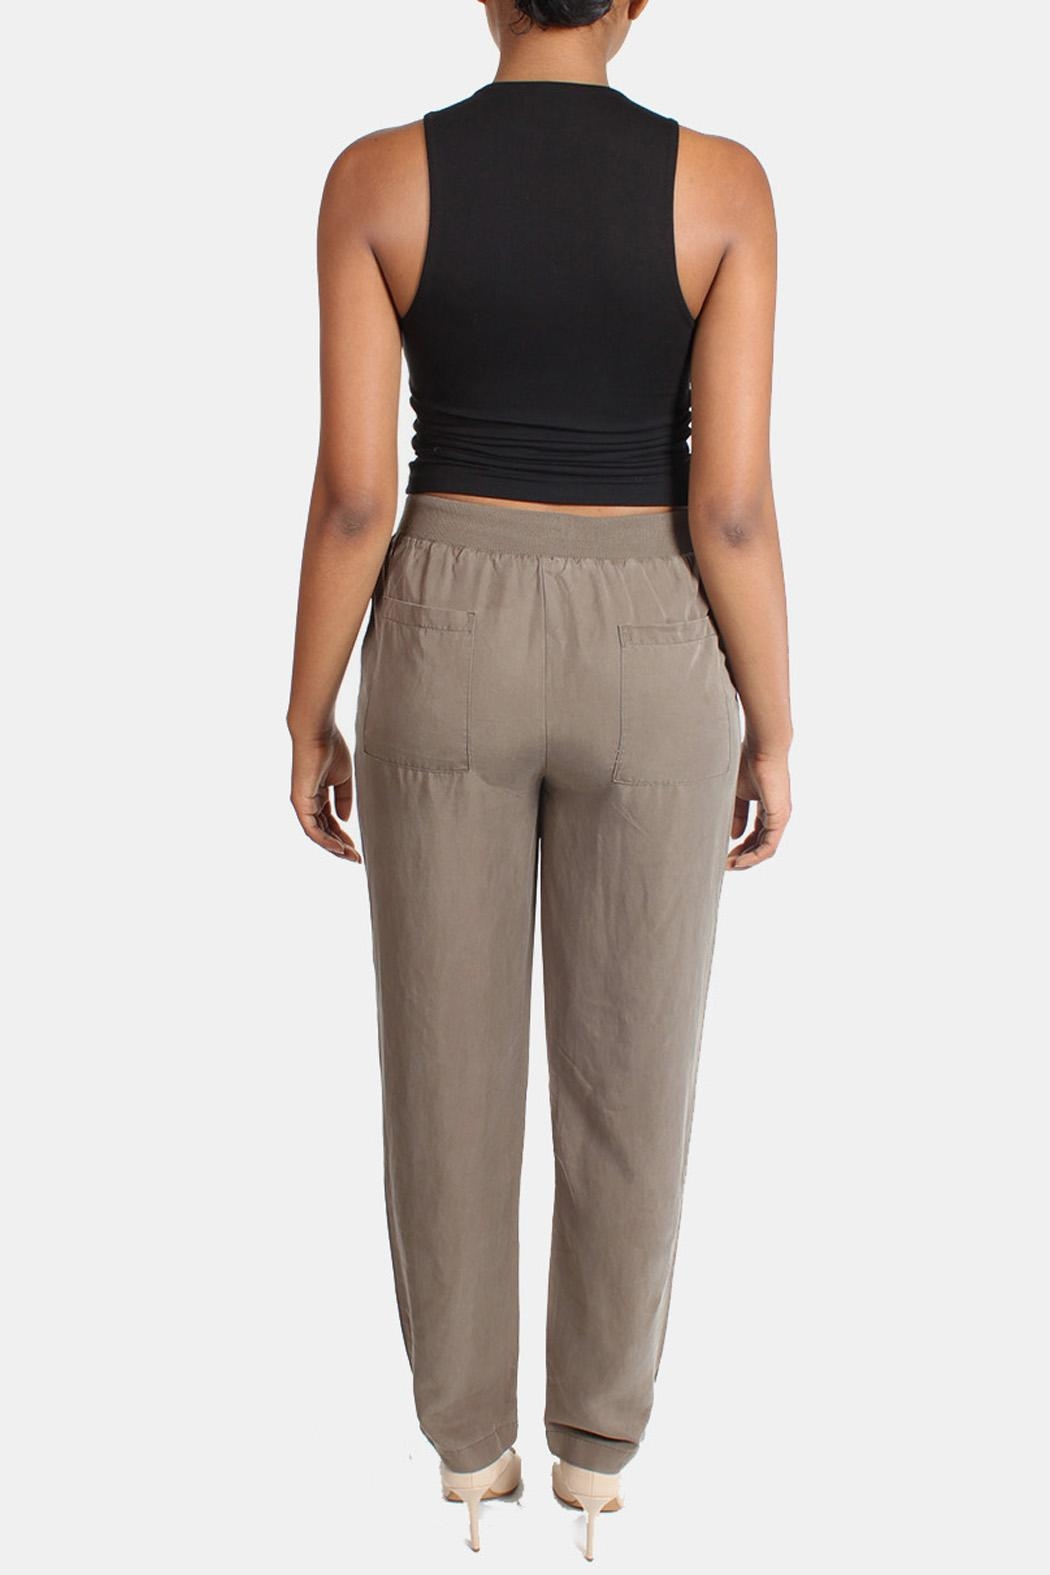 Illa Illa Olive Drawstring Pants - Back Cropped Image